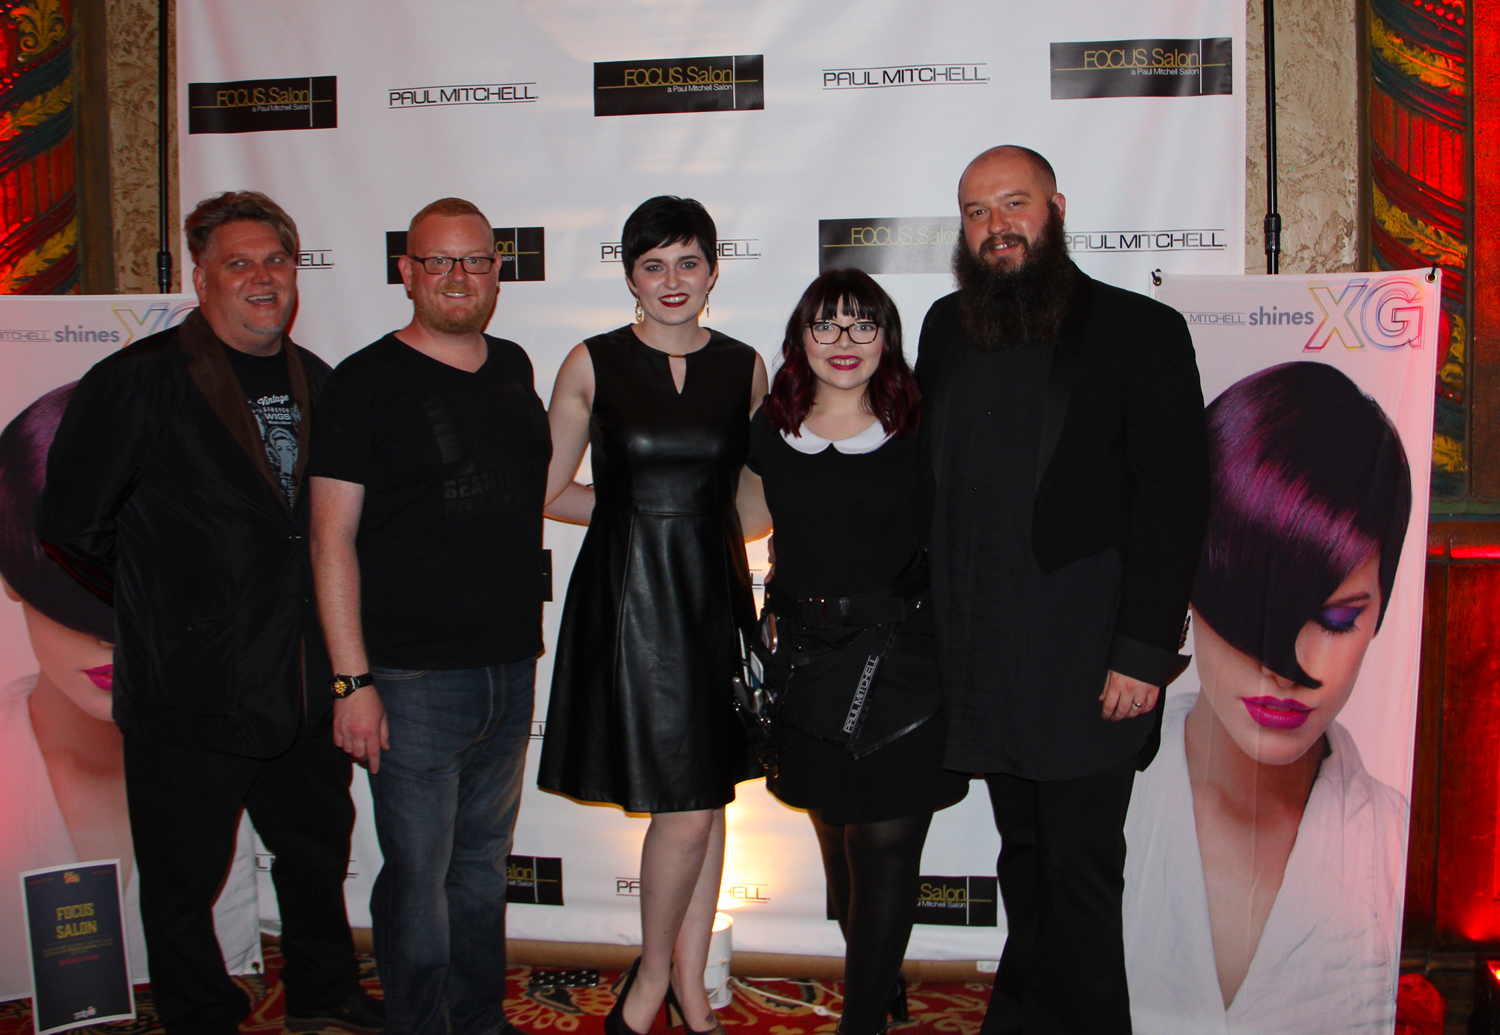 The staff of Paul Mitchell Focus Salon on Baxter Avenue http://www.focussalonhighlands.com/ Kim Austin, David Barringer Tyler -Ann Merritt, Lindset Couch Lucas Meyer